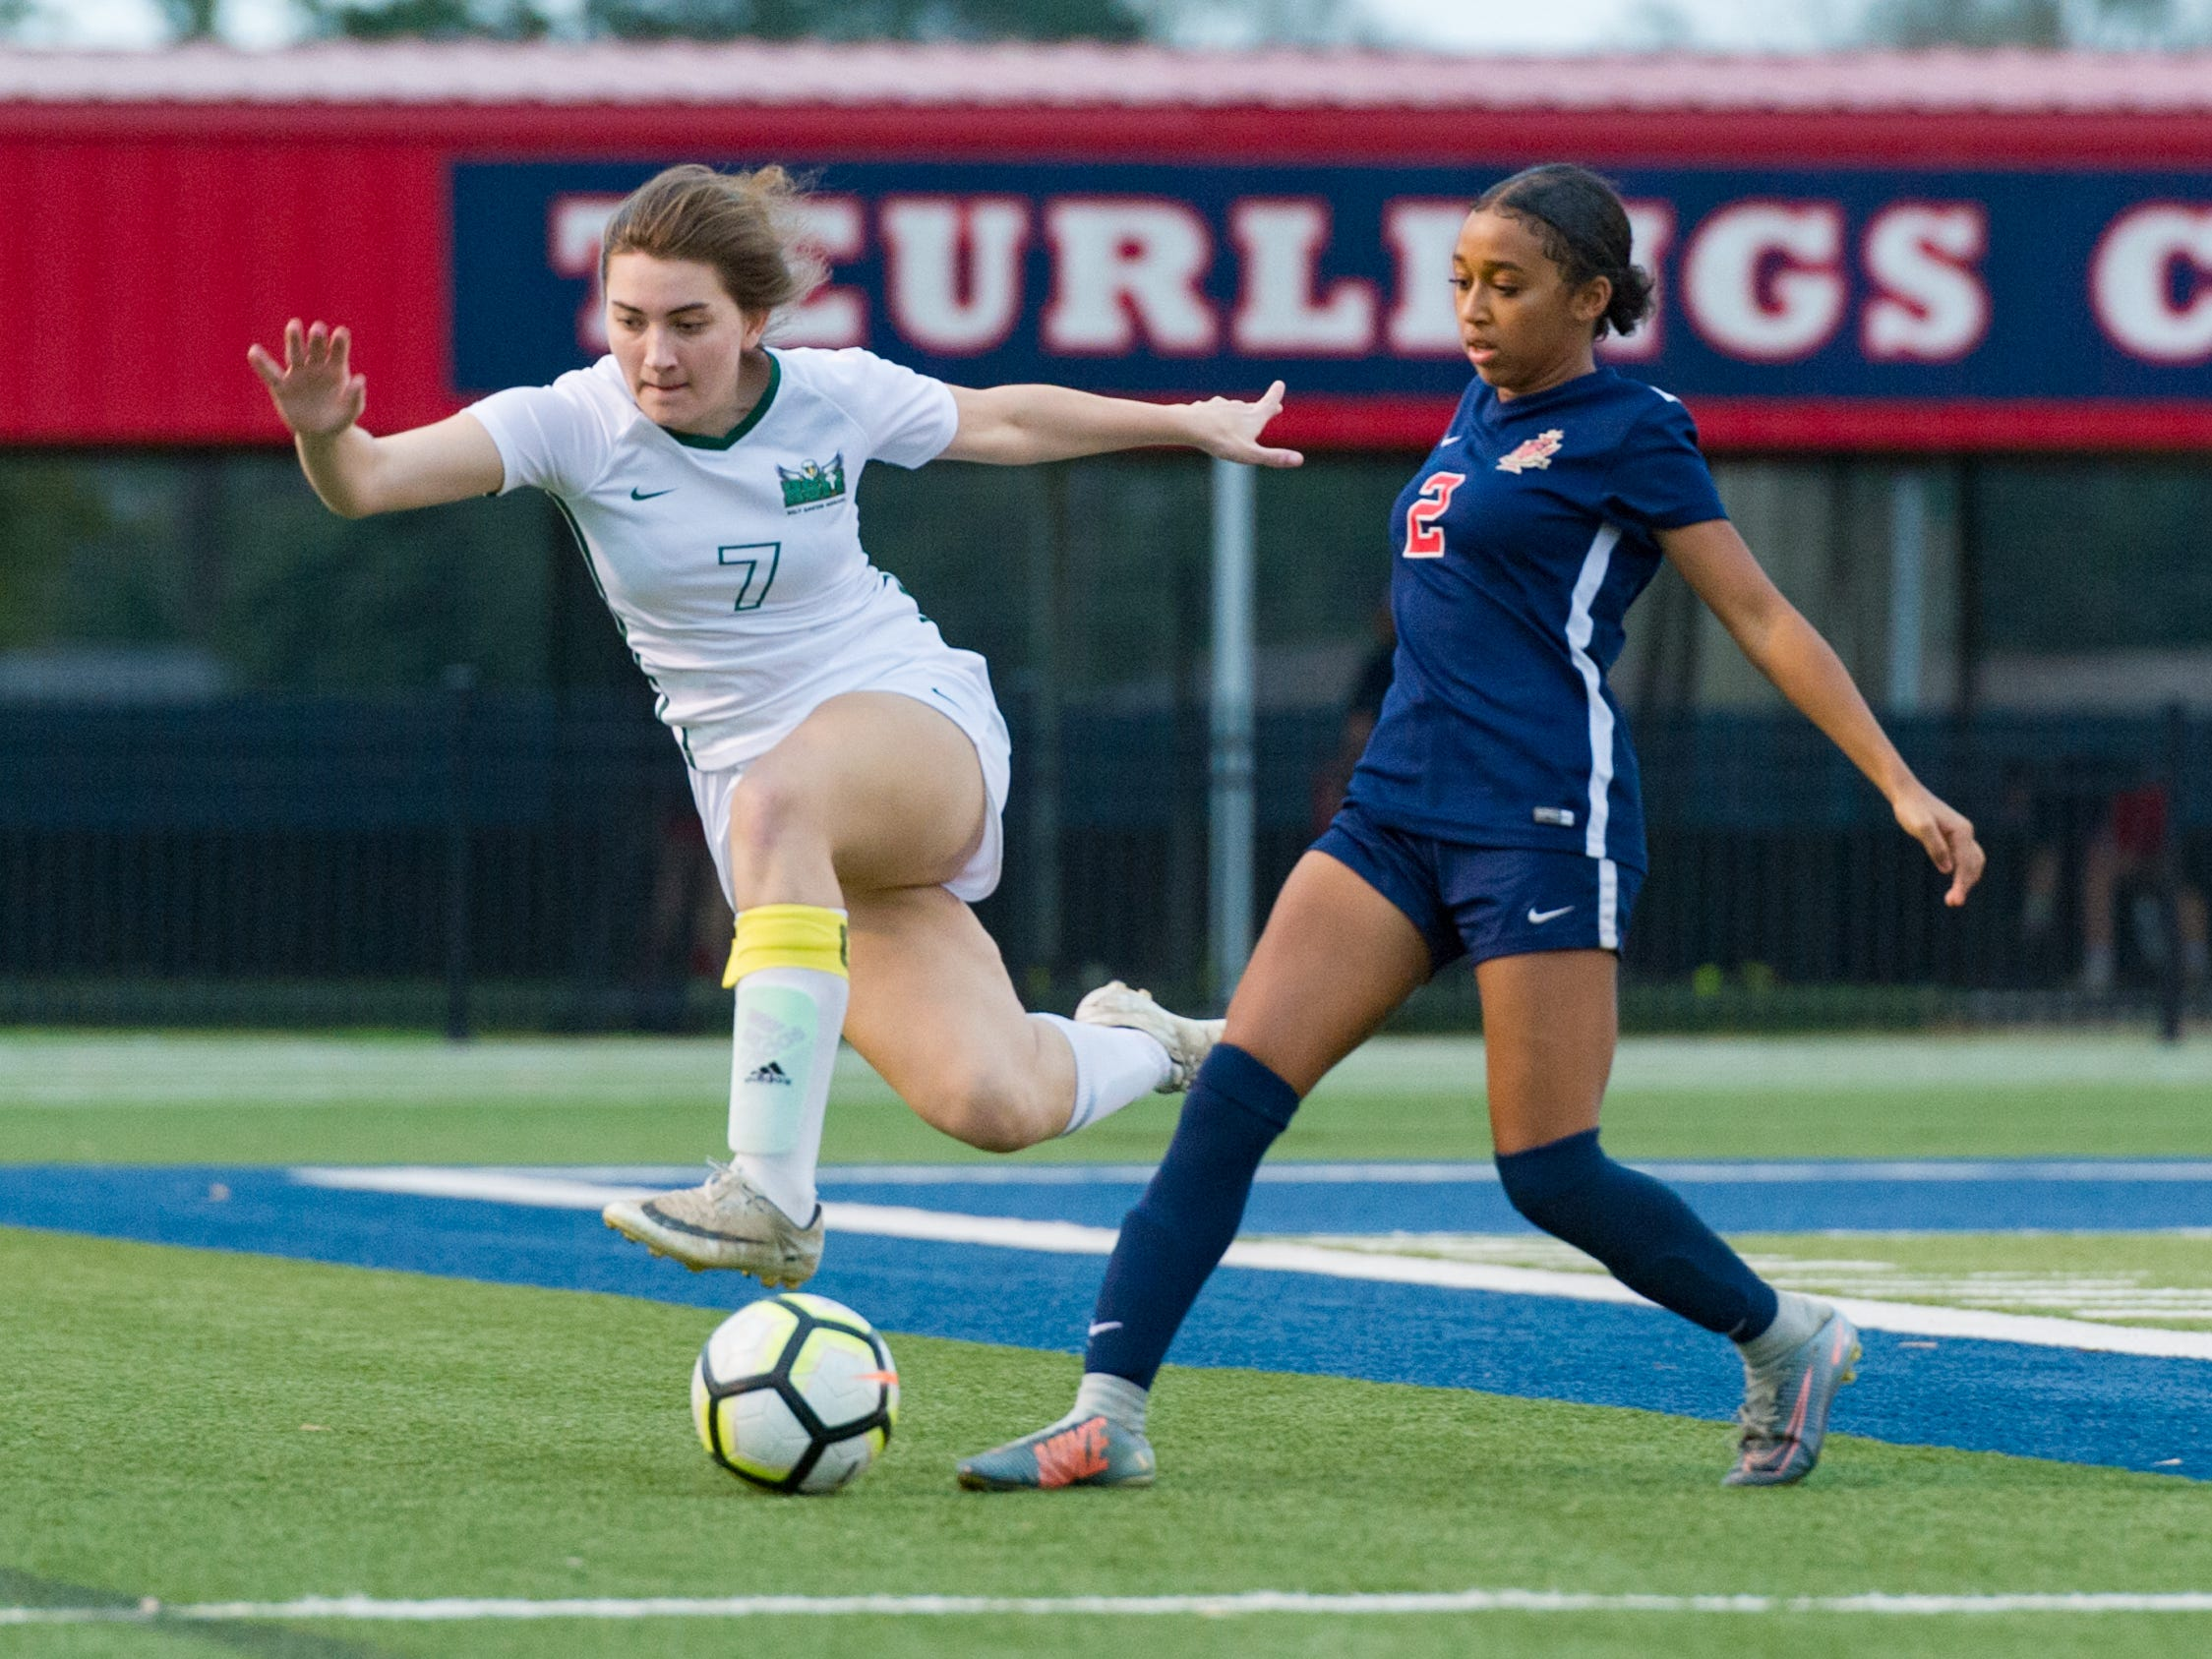 Camryn Chretien takes out defender Anna Robertson as Teurlings Catholic girls soccer takes down Holy Savior Menard in the quarterfinals of the LHSAA soccer playoffs. Monday, Feb. 11, 2019.